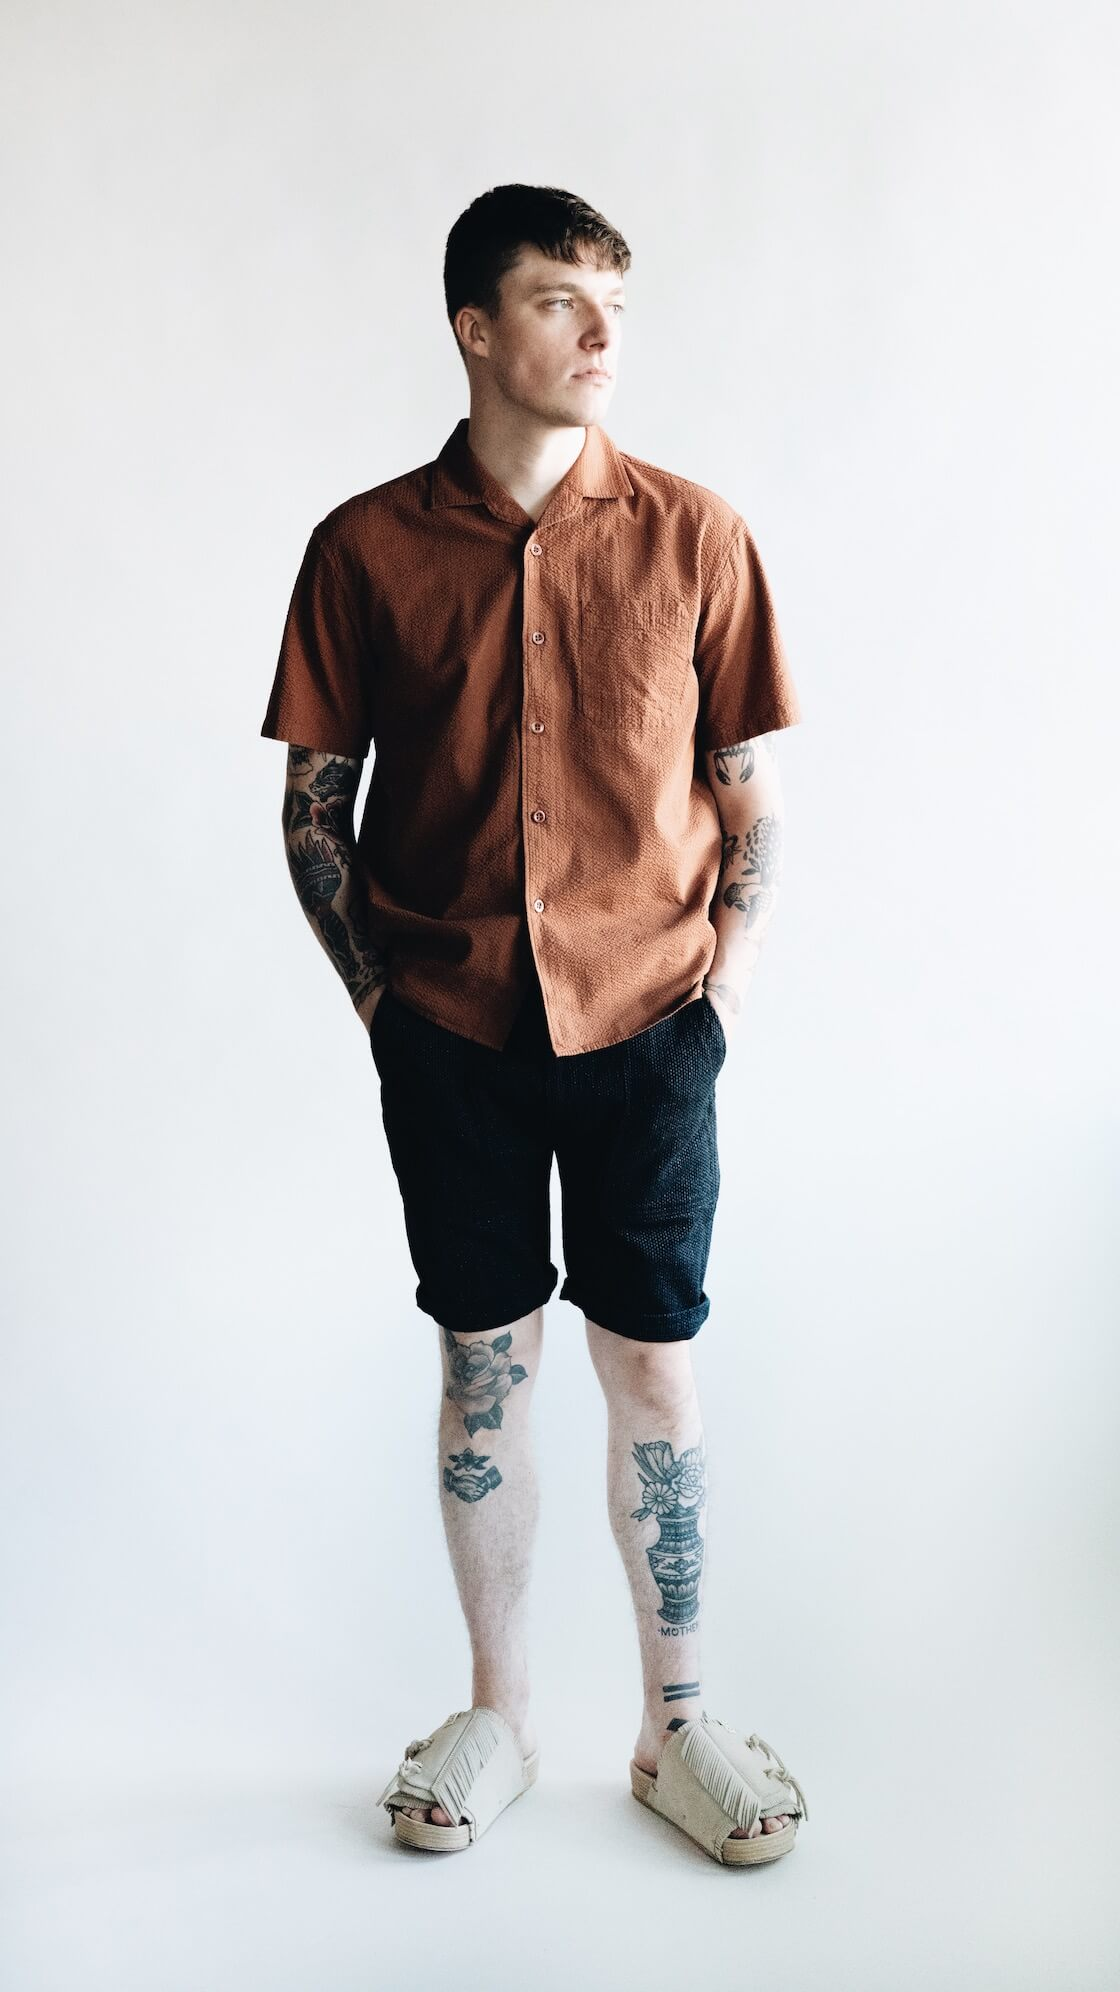 arpenteur pyjama shirt, pure blue japan selvedge sashiko shorts and visvim christo sandals on body